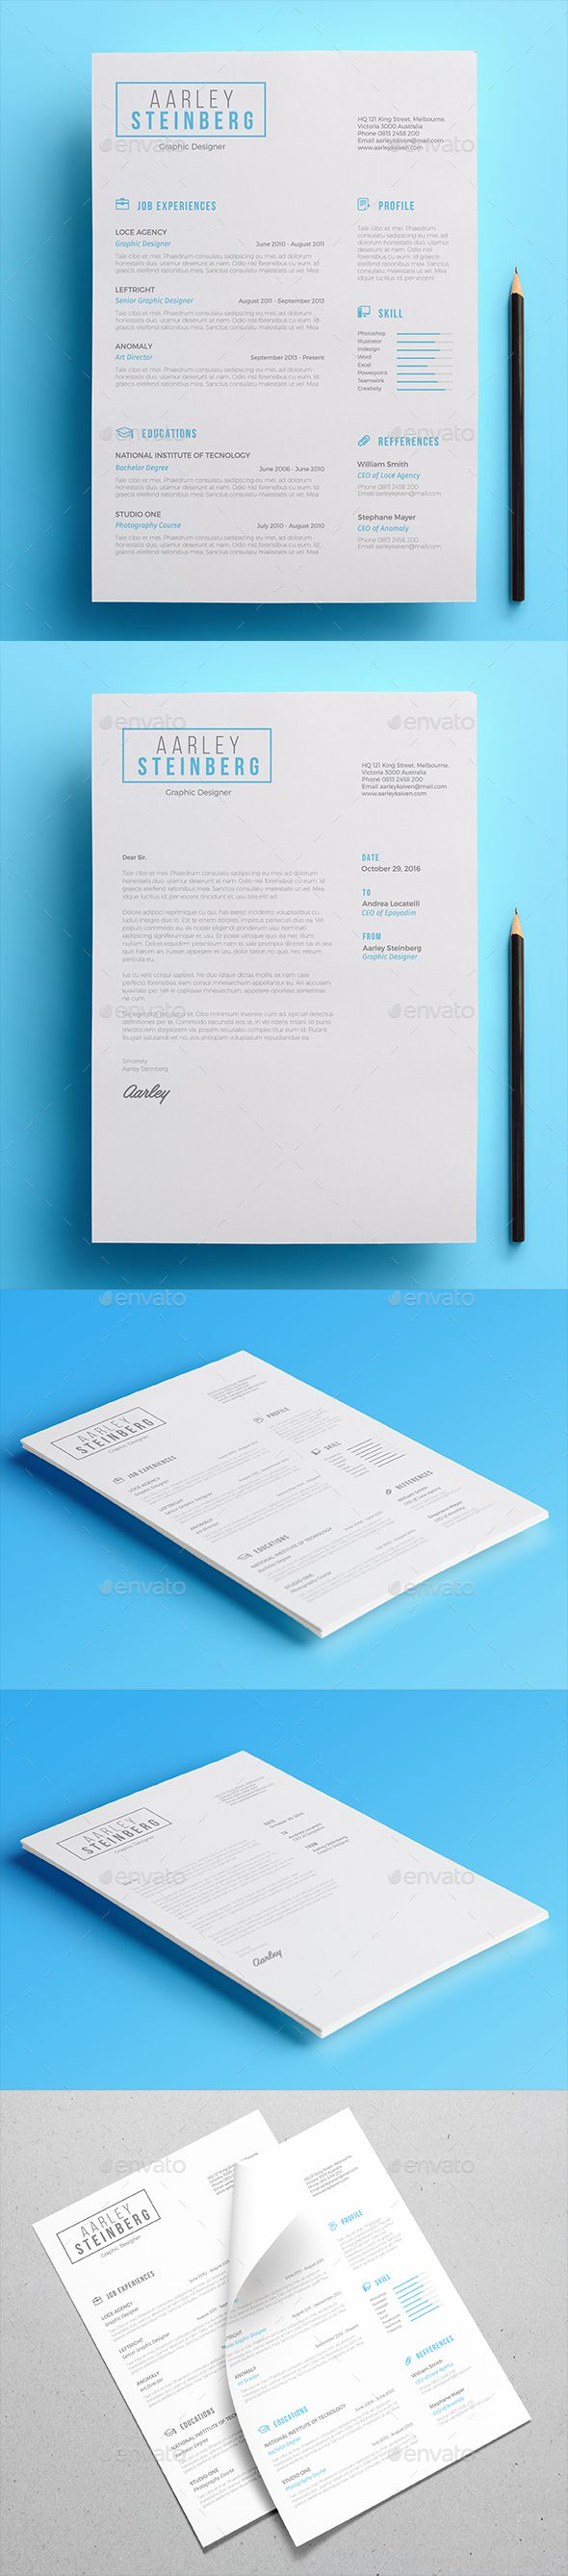 buy minimal resume 02 by aarleykaiven on graphicriver minimal resume is a resume template with simple and clean design make your application letter looks